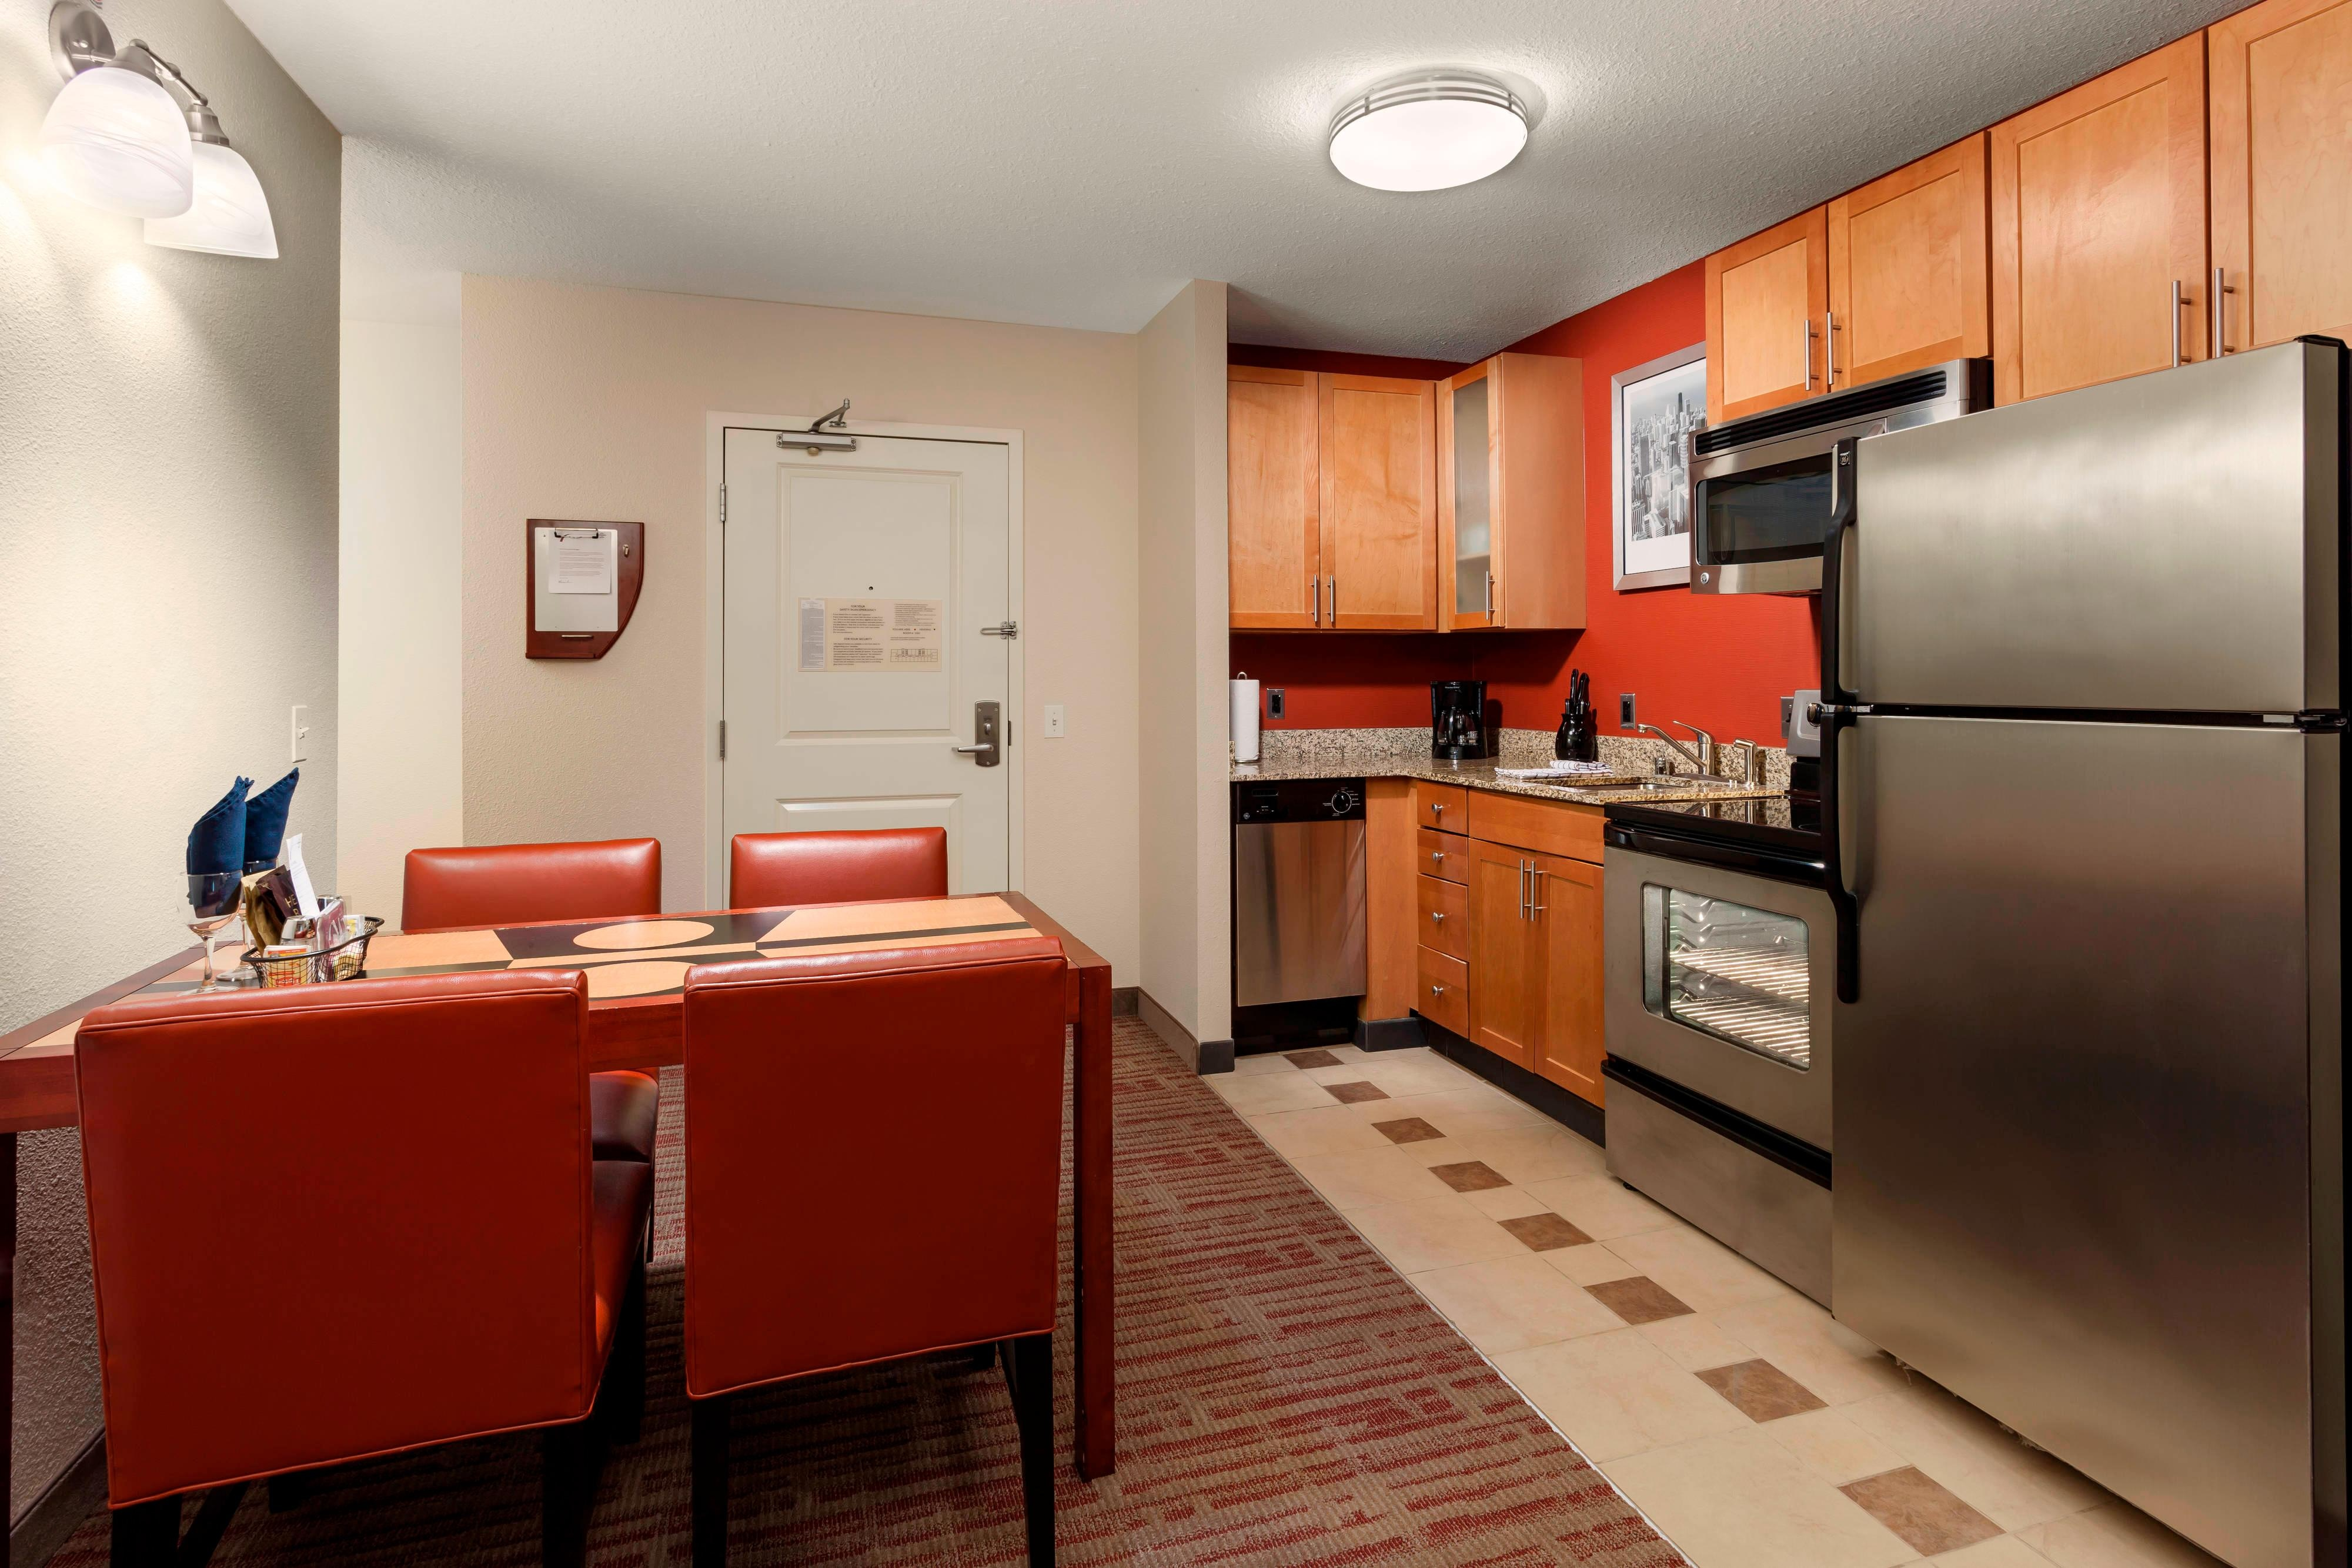 Residence Inn Chicago Downtown River North hotel room kitchen